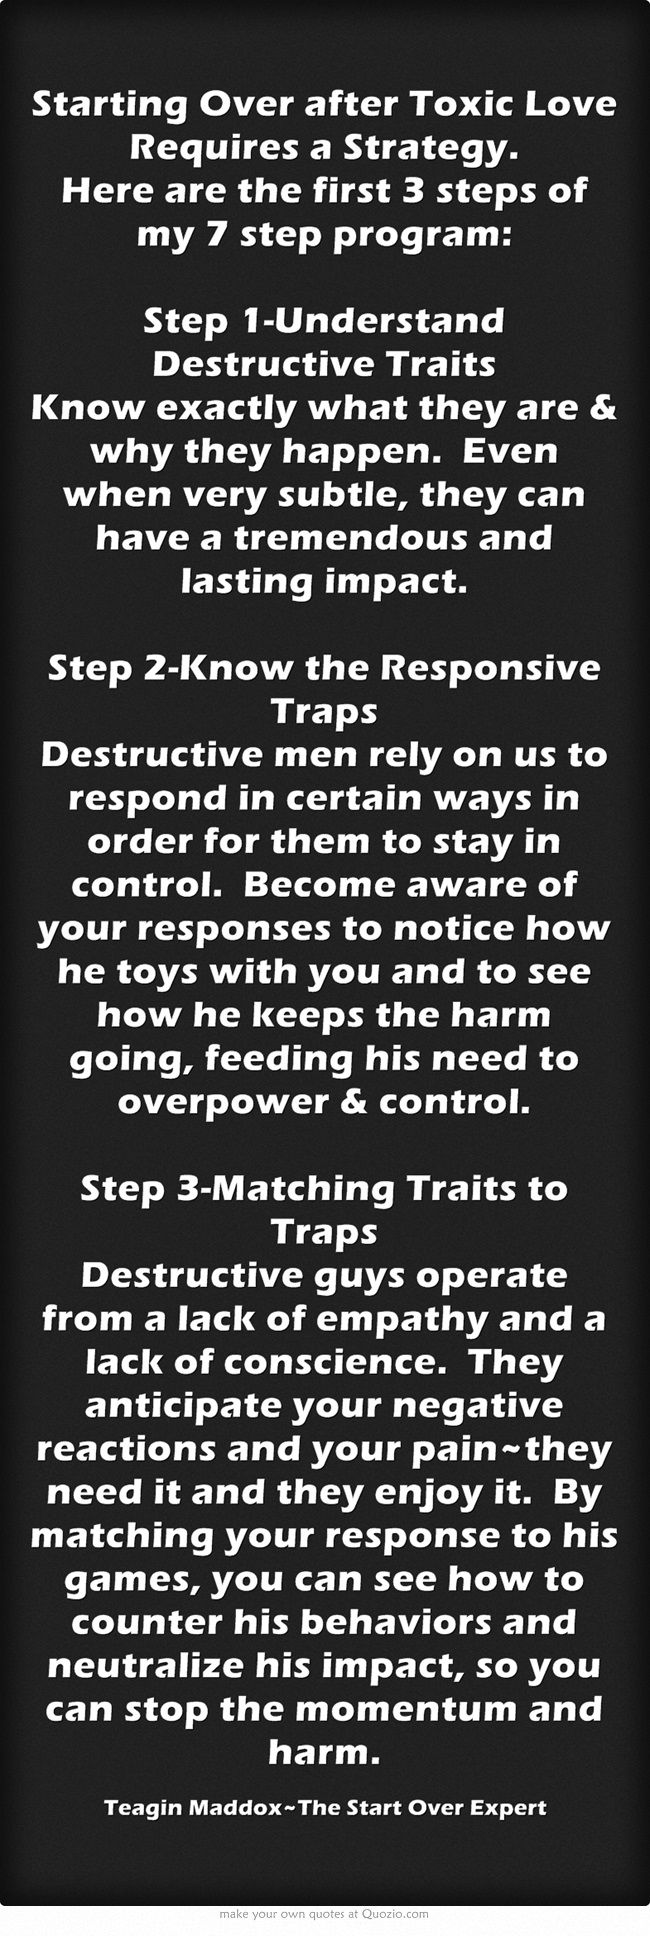 Starting Over after Toxic Love Requires a Strategy.  Here are the first 3 steps of my 7 step program:  Step 1-Understand Destructive Traits Know exactly what they are & why they happen. Even when very subtle, they can have a tremendous and lasting impact.  Step 2-Know the Responsive Traps Destructive men rely on us to respond in certain ways in order for them to stay in control. Become aware of your responses to notice how he toys with you and to see how he keeps the...